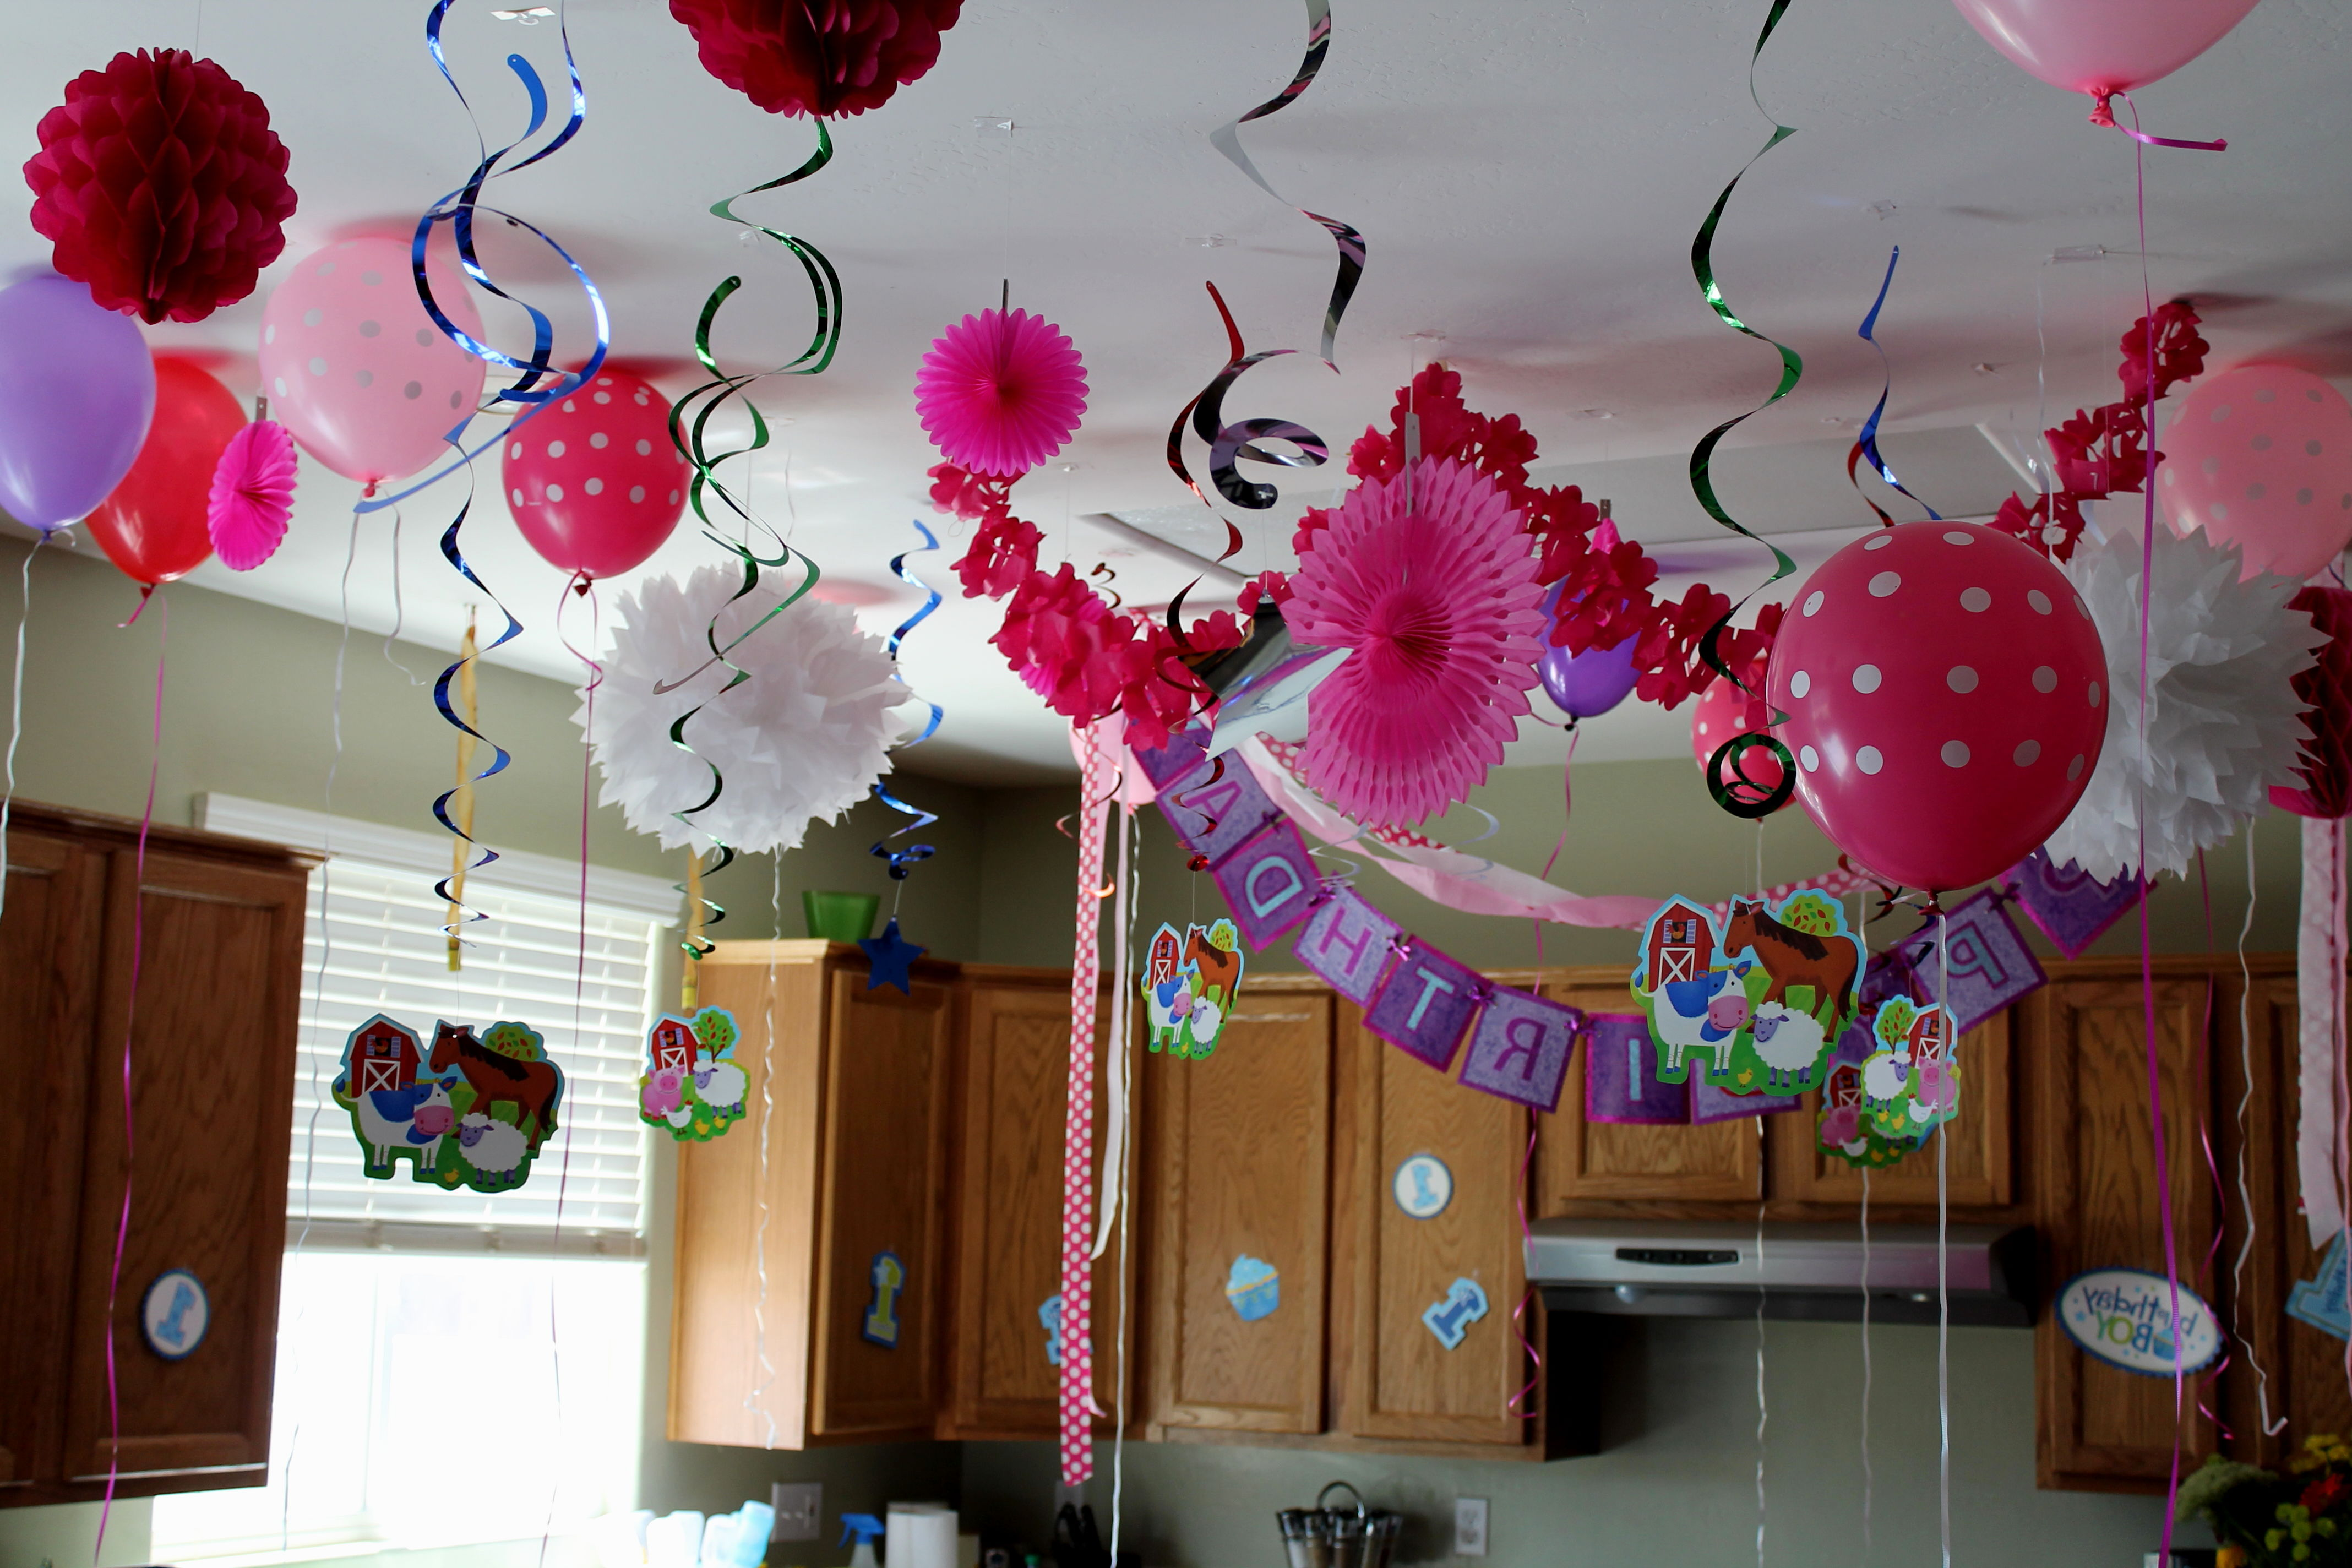 bday decoration ideas ; simple-birthday-decoration-ideas-in-home-simple-birthday-decoration-ideas-in-home